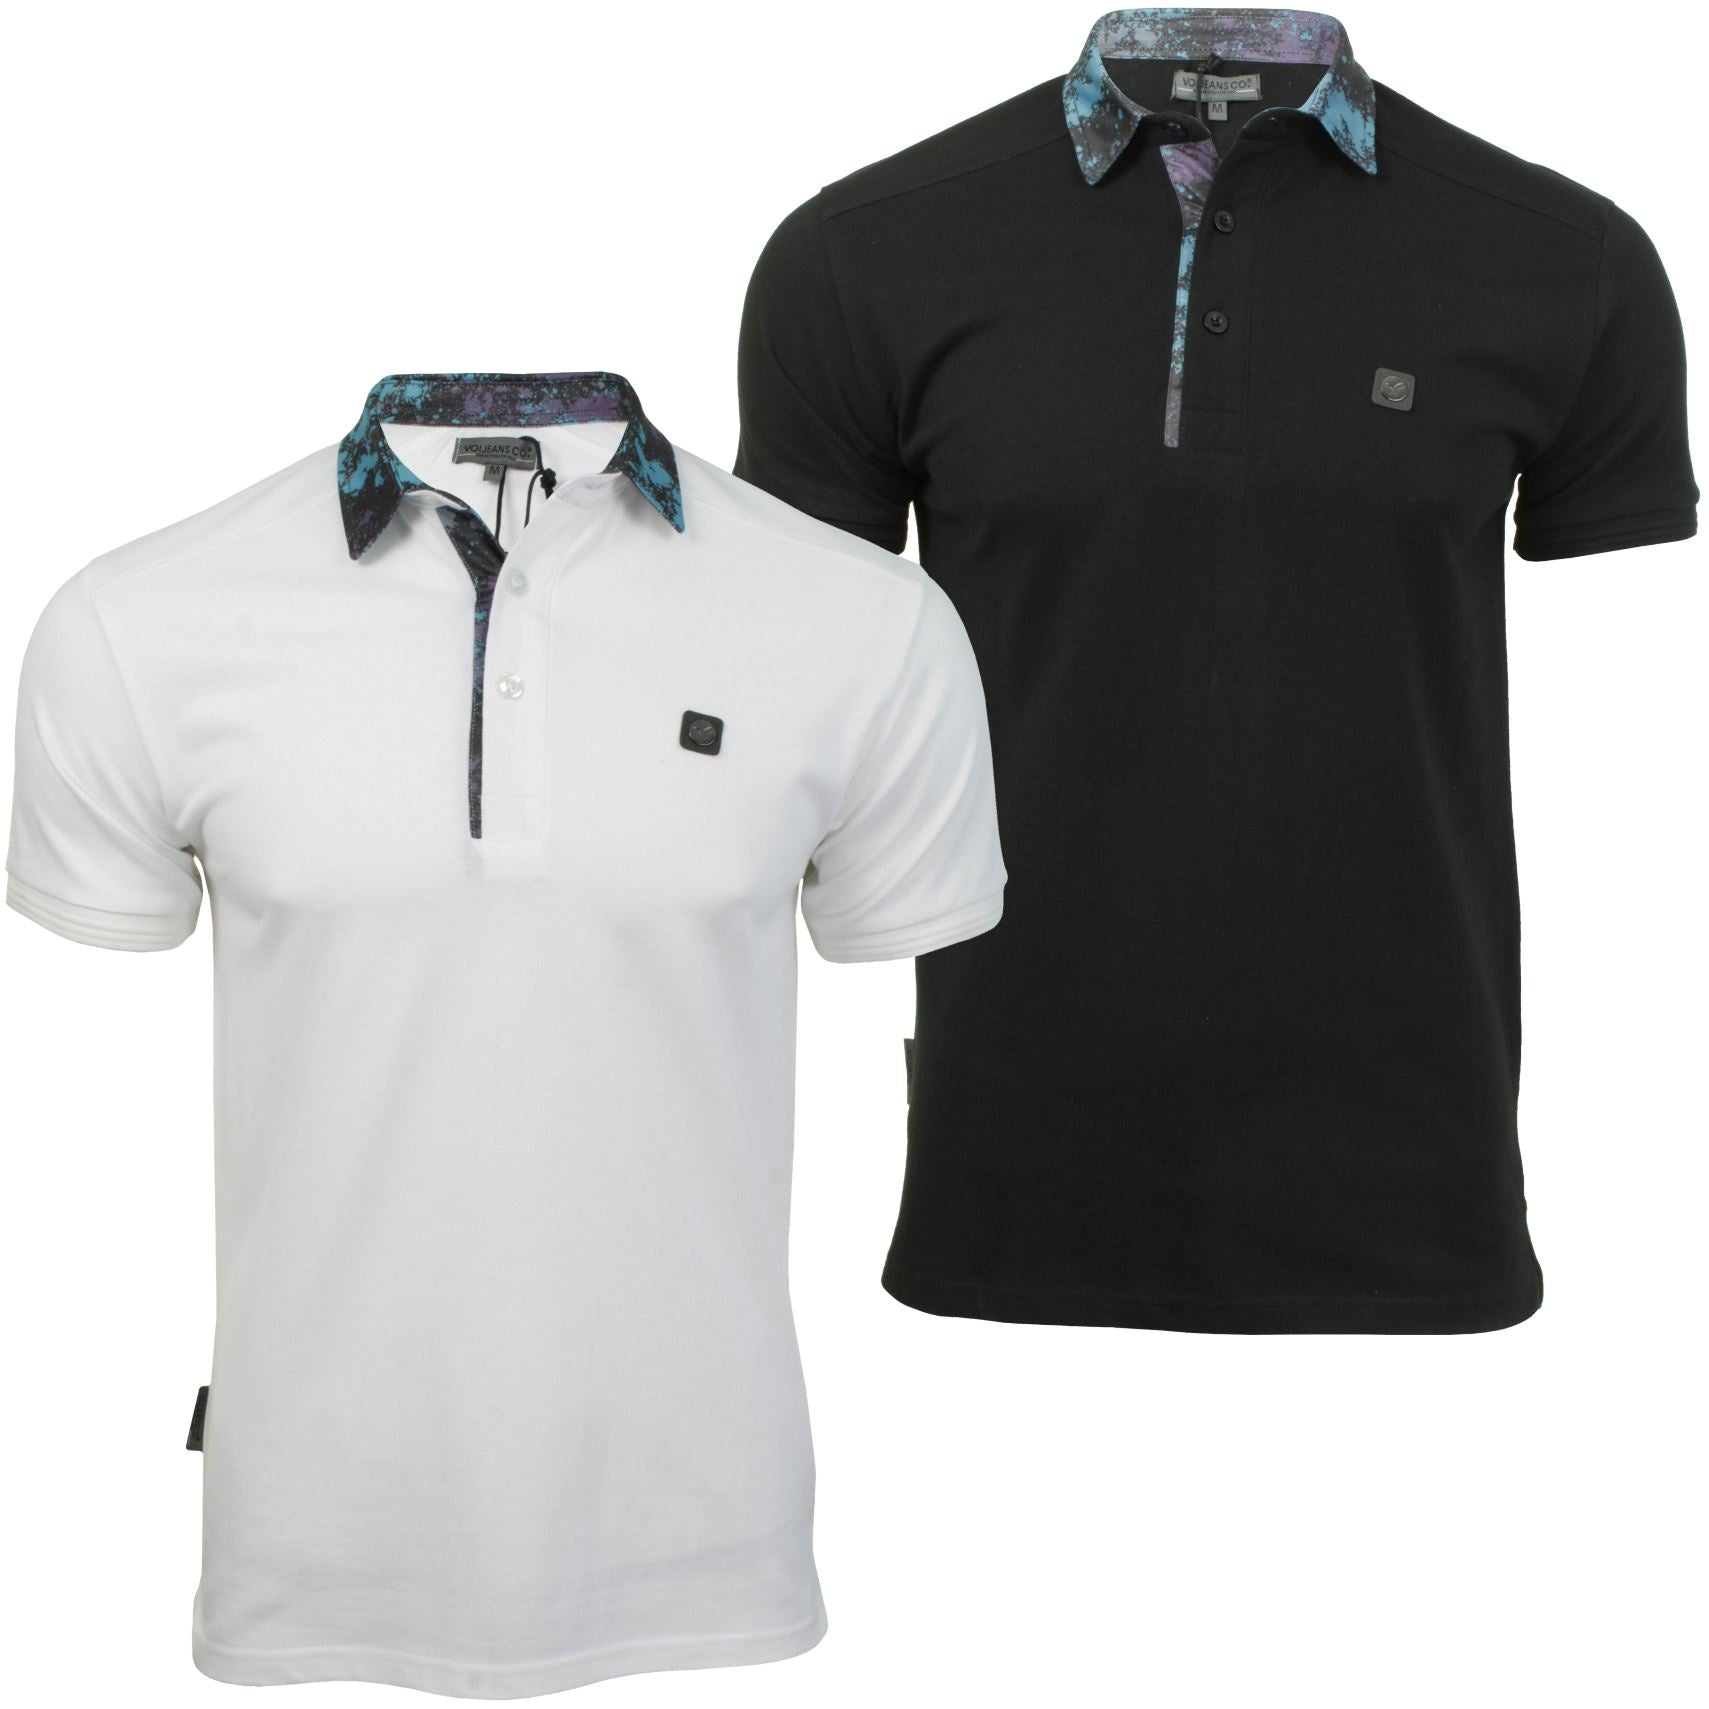 Mens Polo T-Shirt by Voi Jeans 'Ghost' Short Sleeved-Main Image